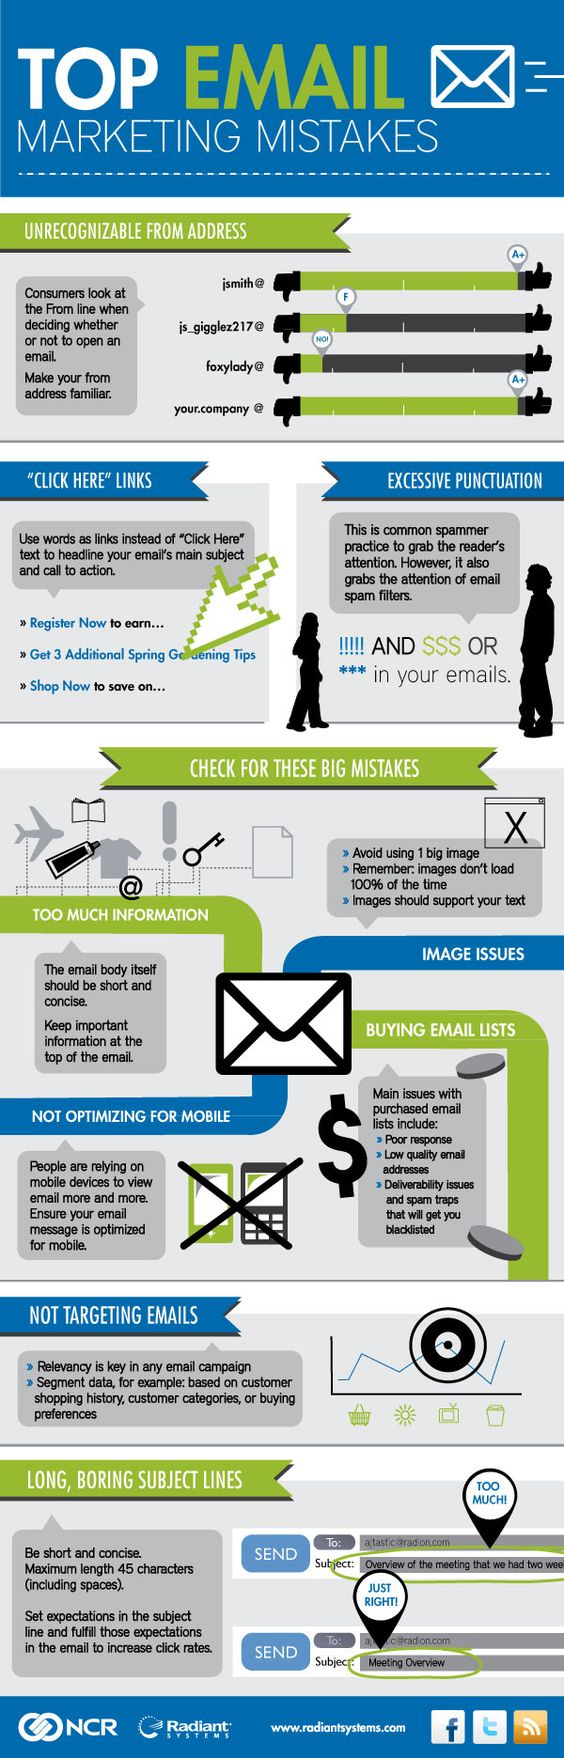 Top Email Marketing Mistakes: Emailmarketing Mistakes, Top Emailmarketing, Emailmarketing Infografia, Email Marketing Infographics, En Emailmarketing, Emailmarketing Seo, Mistakes Emailmarketing